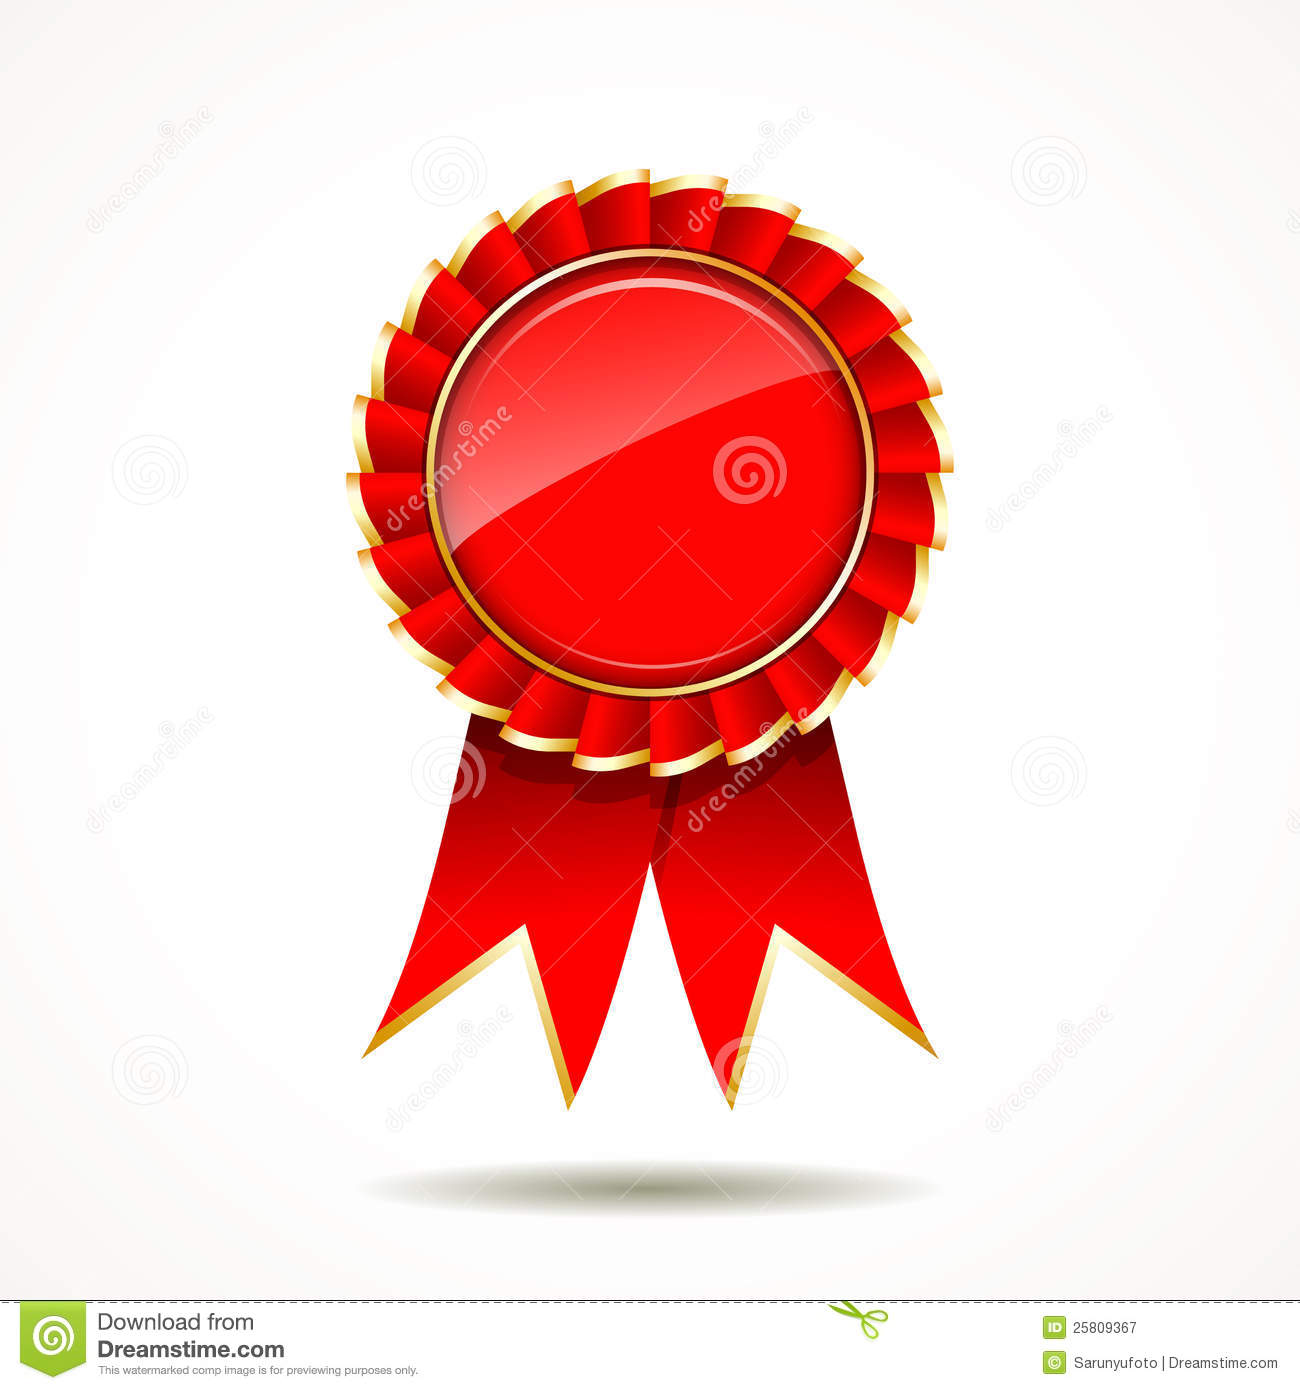 Red ribbon award clipart picture library Red And Gold Ribbon Award Royalty Free Stock Photography - Image ... picture library